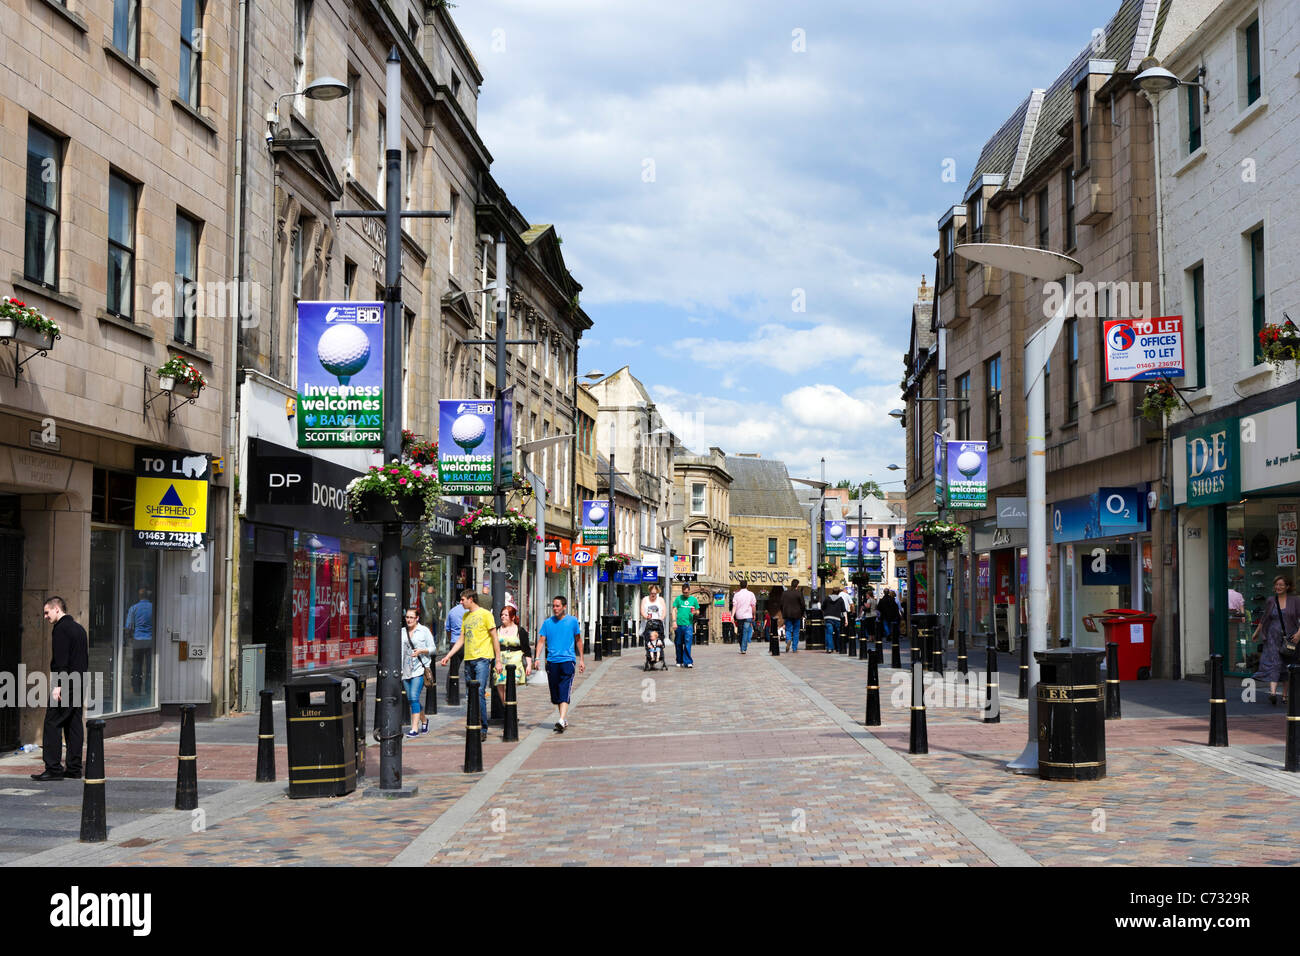 Shops on the High Street in the city centre, Inverness, Highland, Scotland, UK - Stock Image